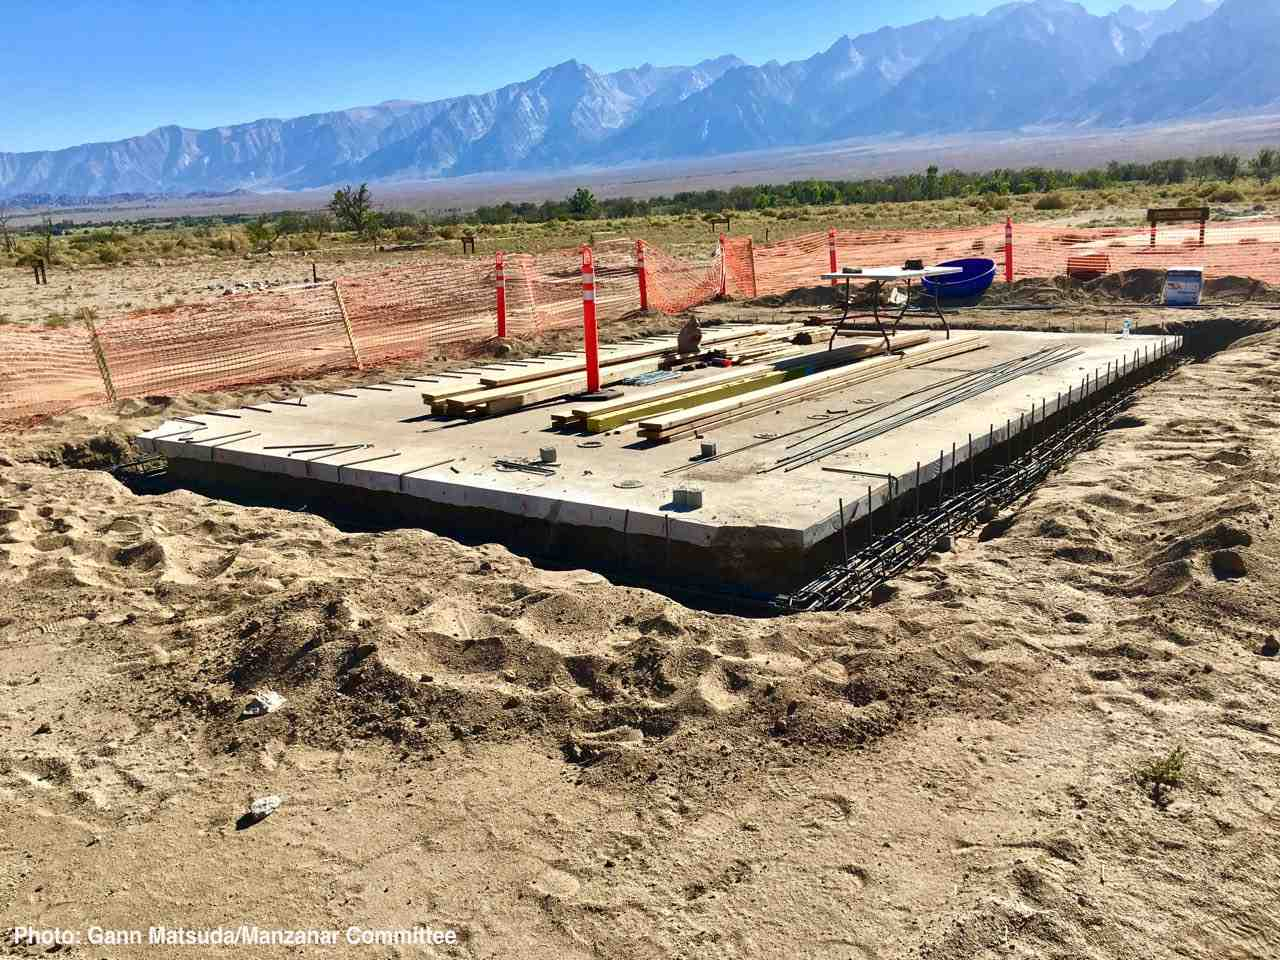 Initial work on constructing a historic replica of the Block 14 women's latrine at Manzanar National Historic Site has begun. In this photo, the historic concrete slab foundation is being reinforced with rebar to meet current seismic standards. (Photo by Gann Matsuda/Manzanar Committee)